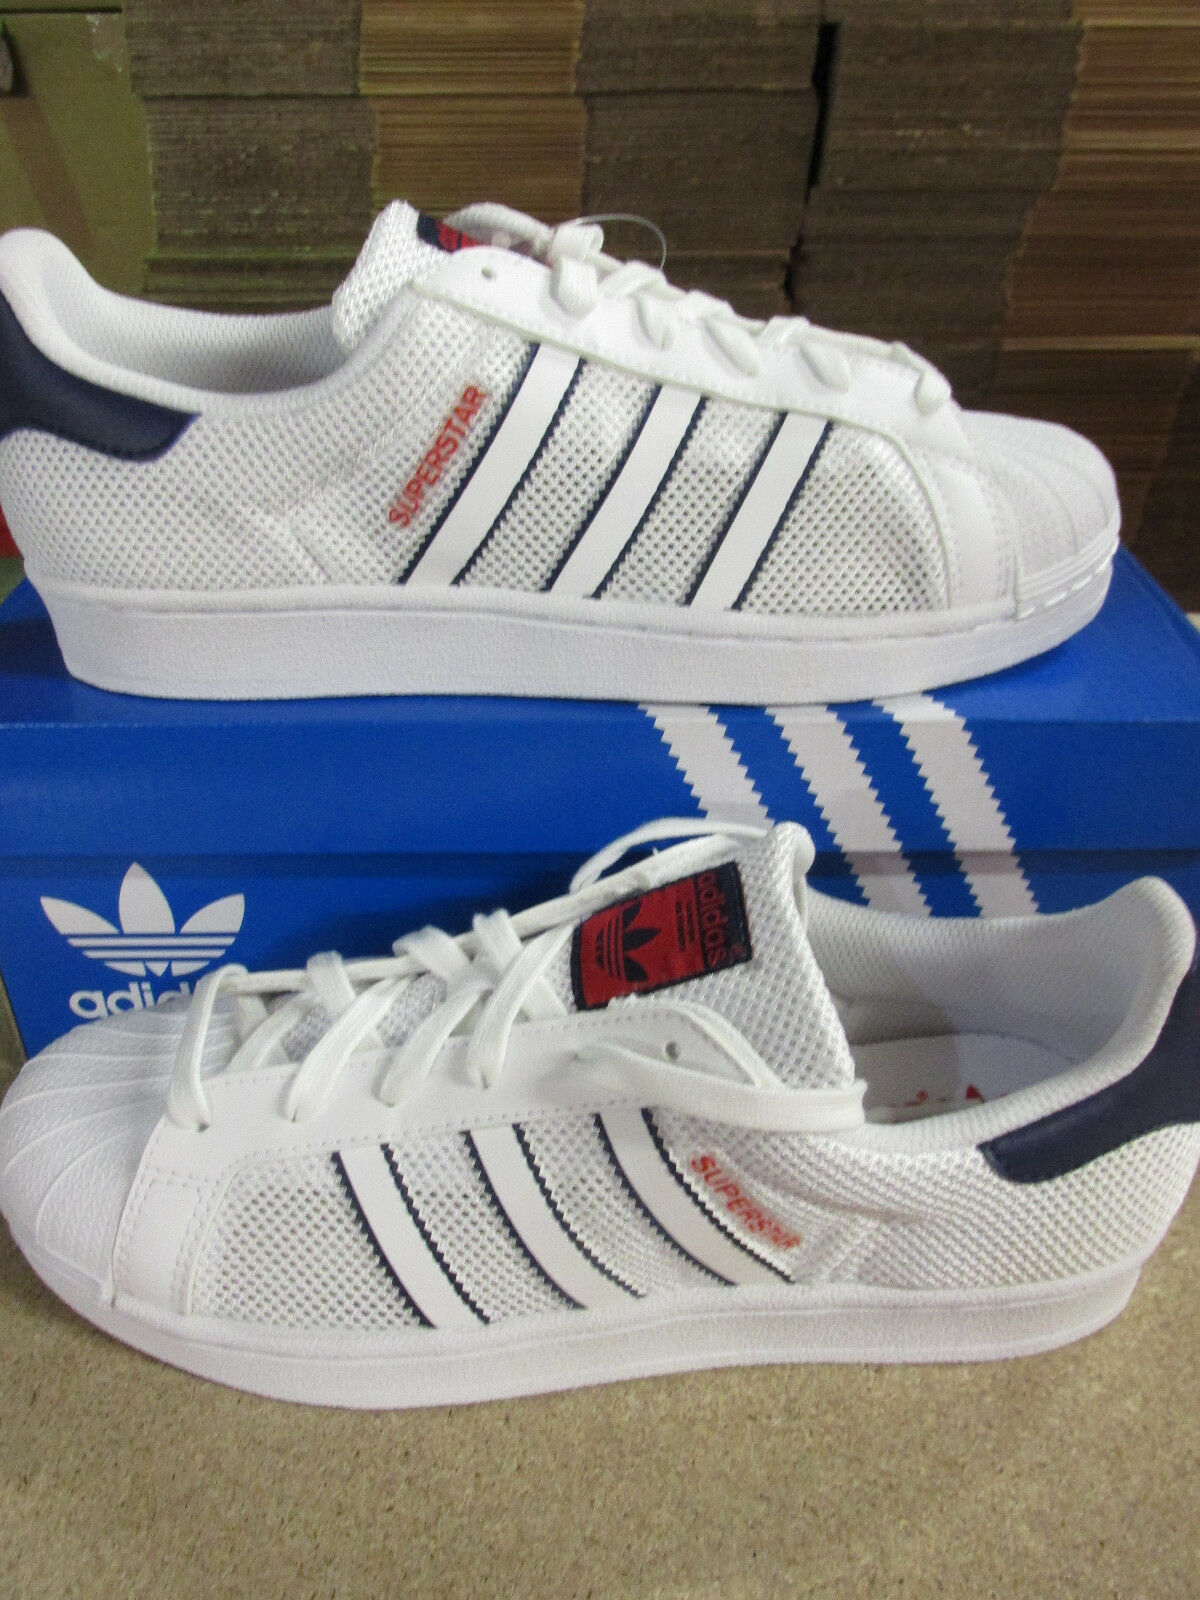 Adidas Originals Superstar zapatos hombre Trainers bb5393 zapatillas zapatos Superstar 954219